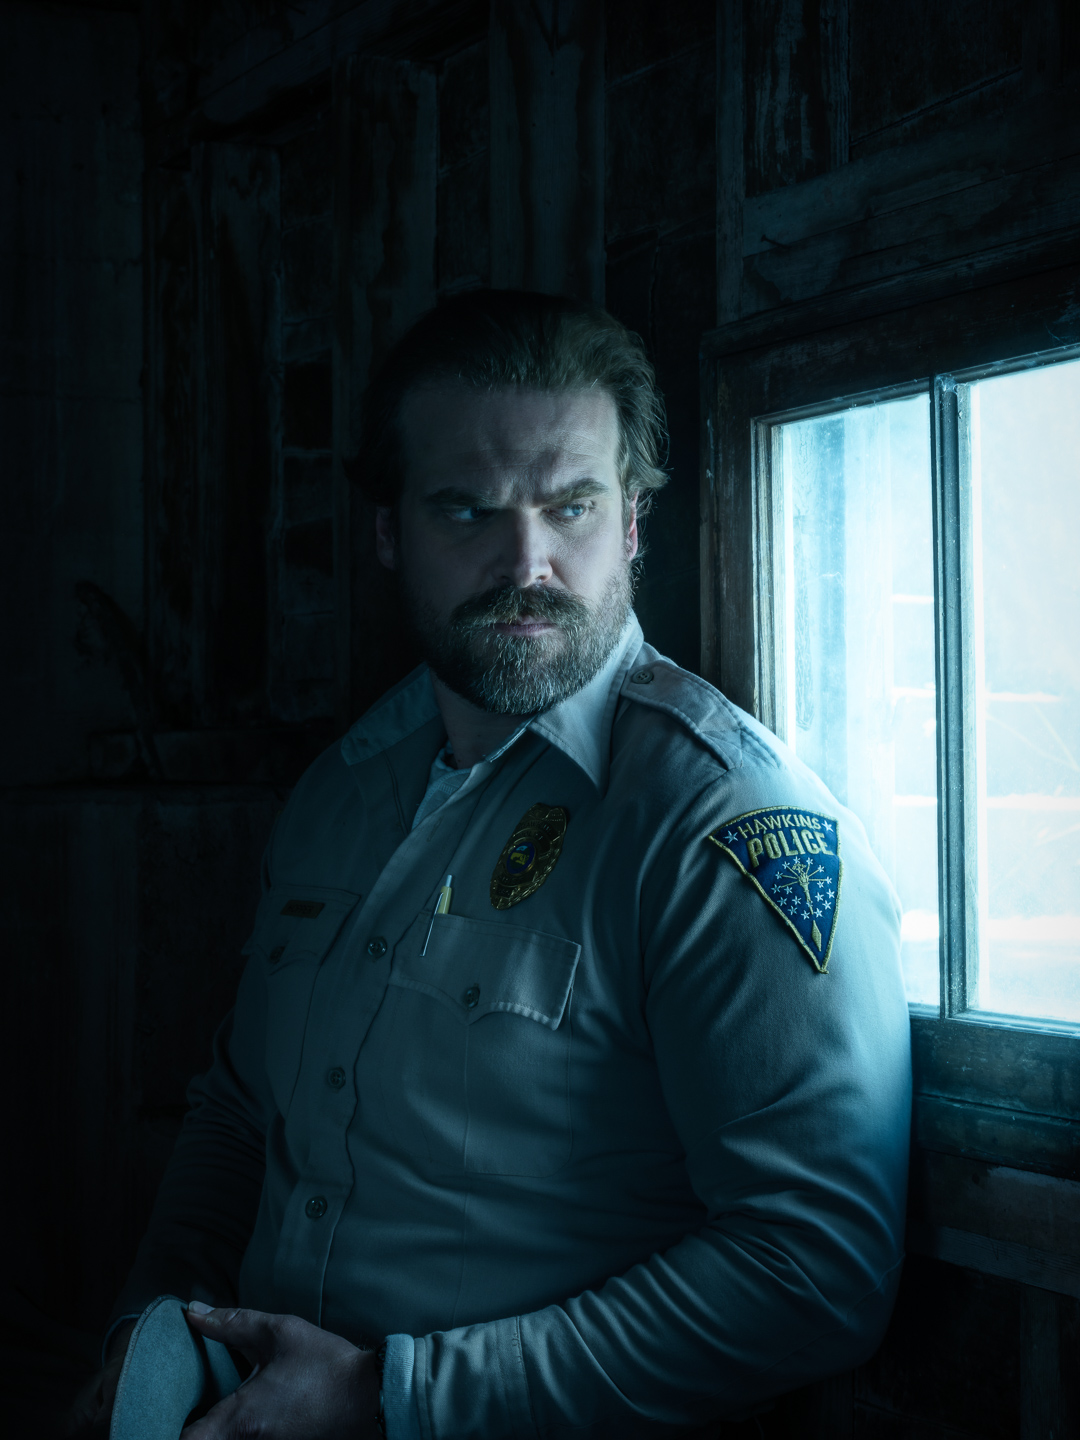 Winters_EW_Stranger_Things_David_Harbour_0182